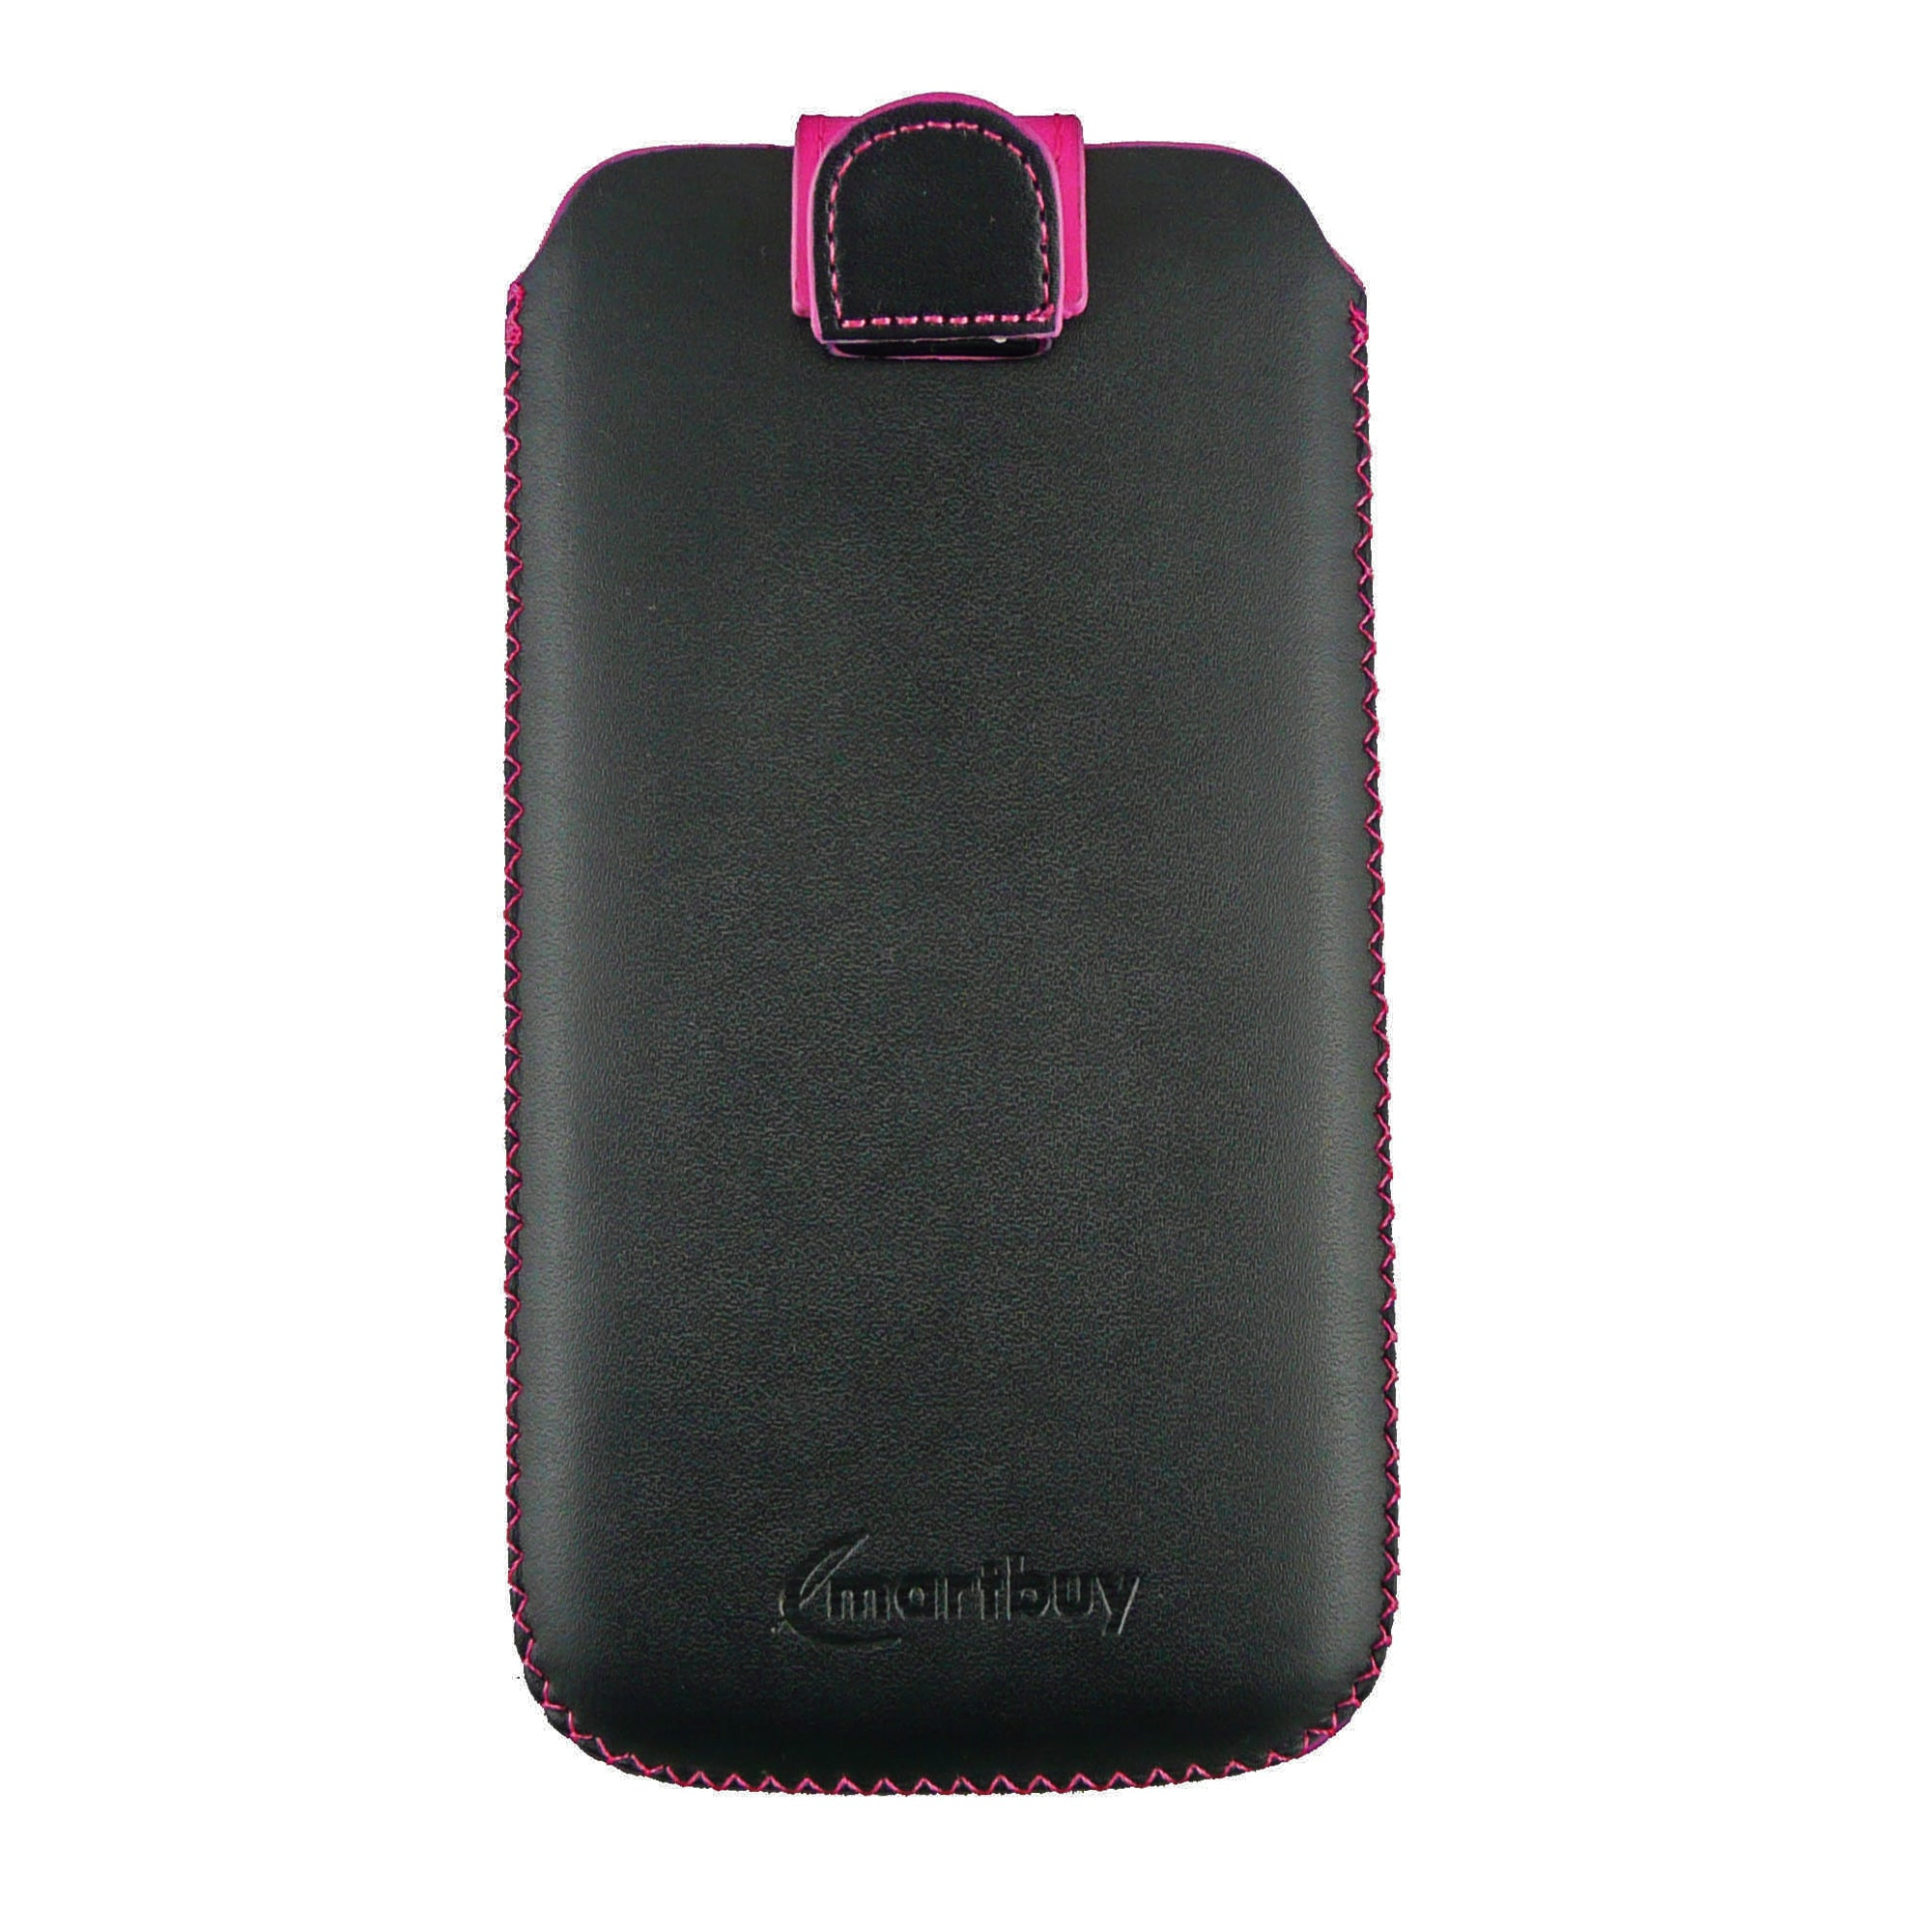 Universal Phone Pouch - Hot Pink Gem Studded Plain